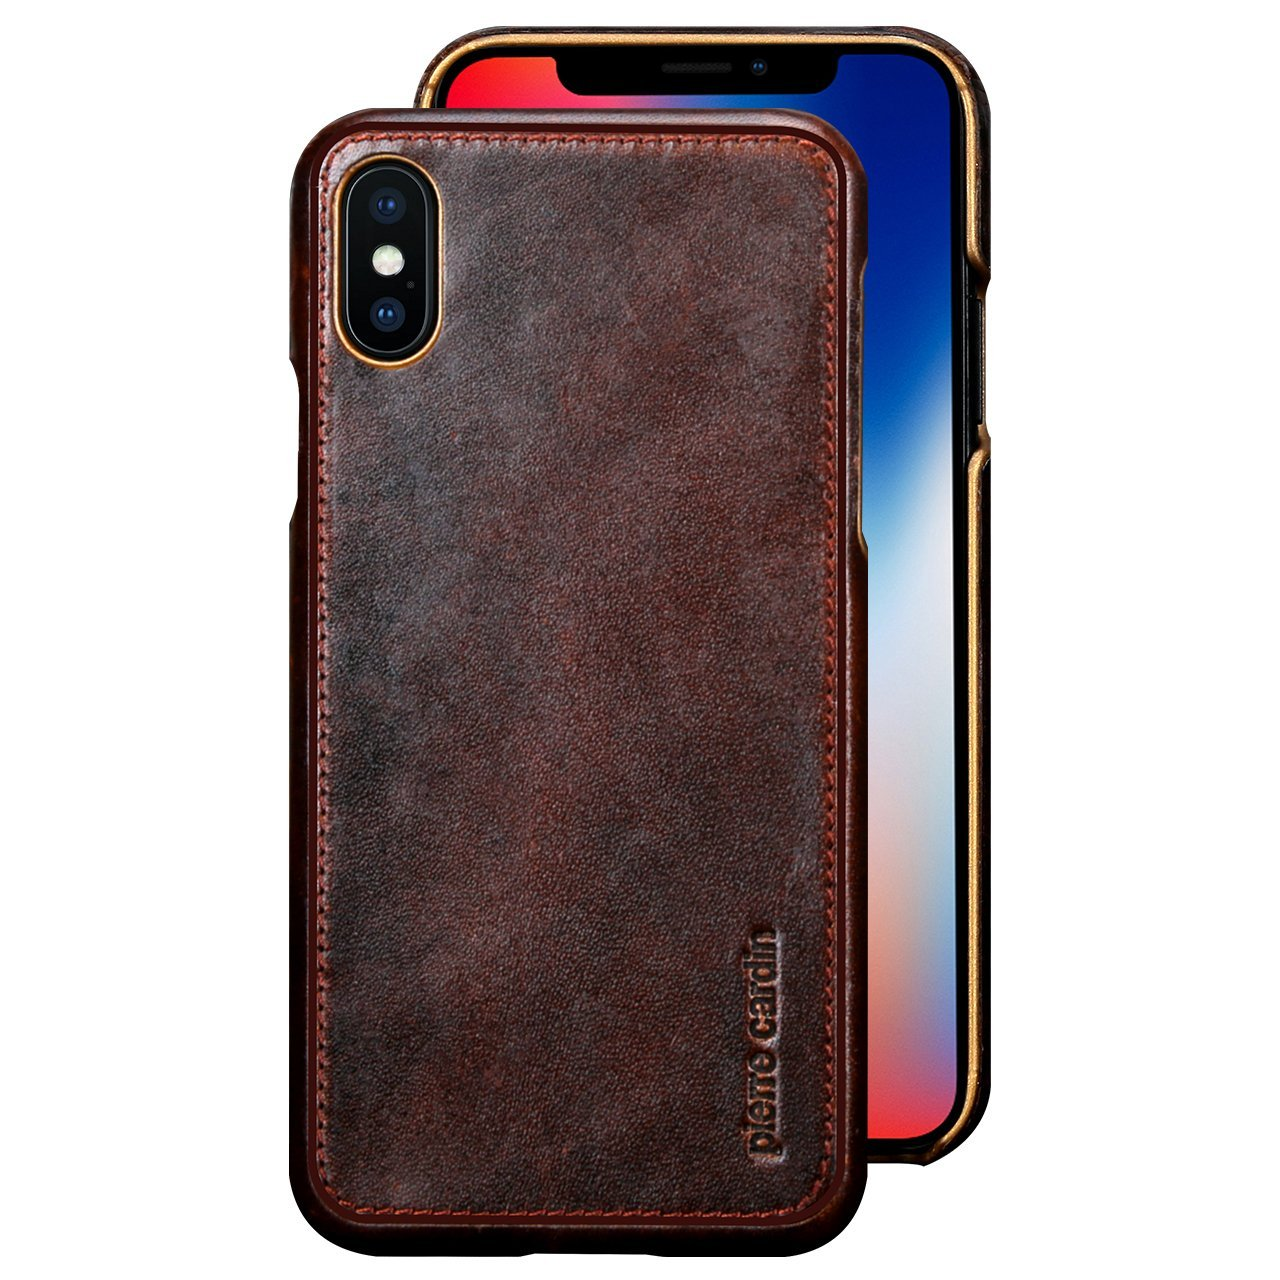 iPhone X cases 6 best leather phone cow hide